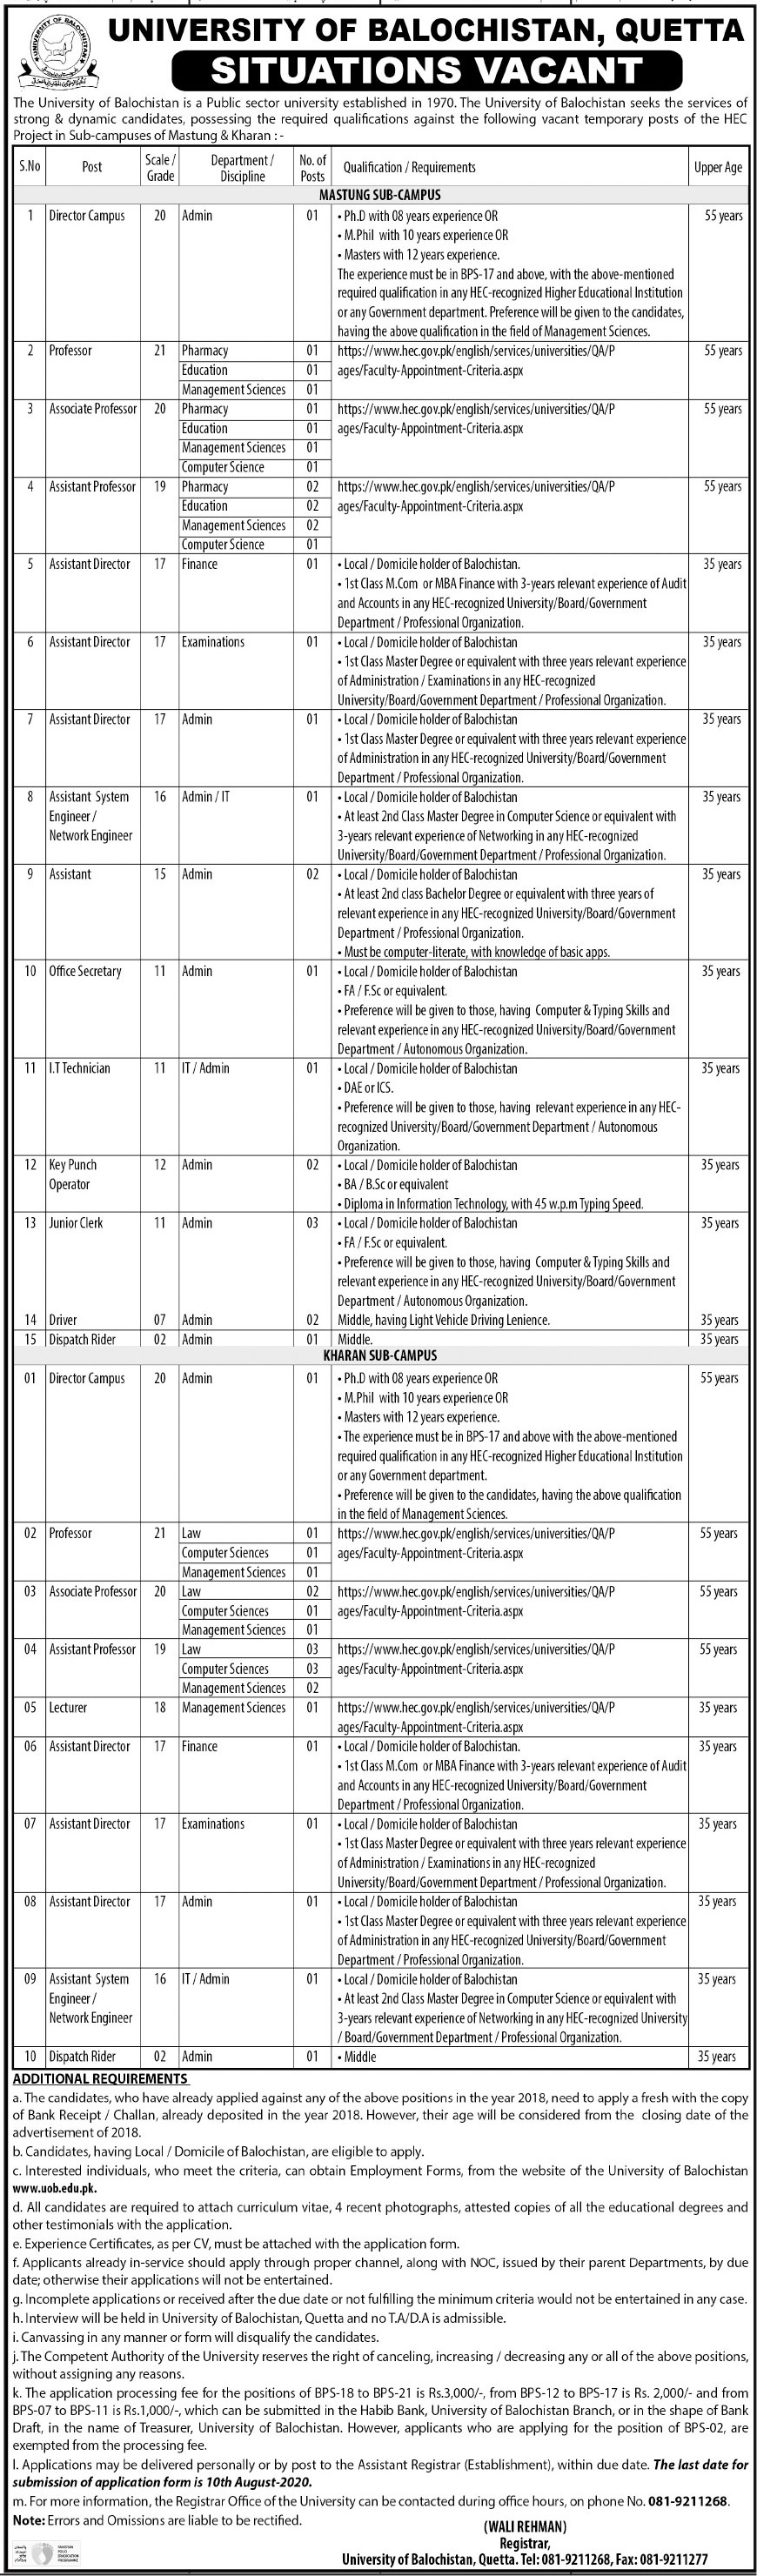 University Of Balochistan jobs newspaper ad for Director Campus in Quetta